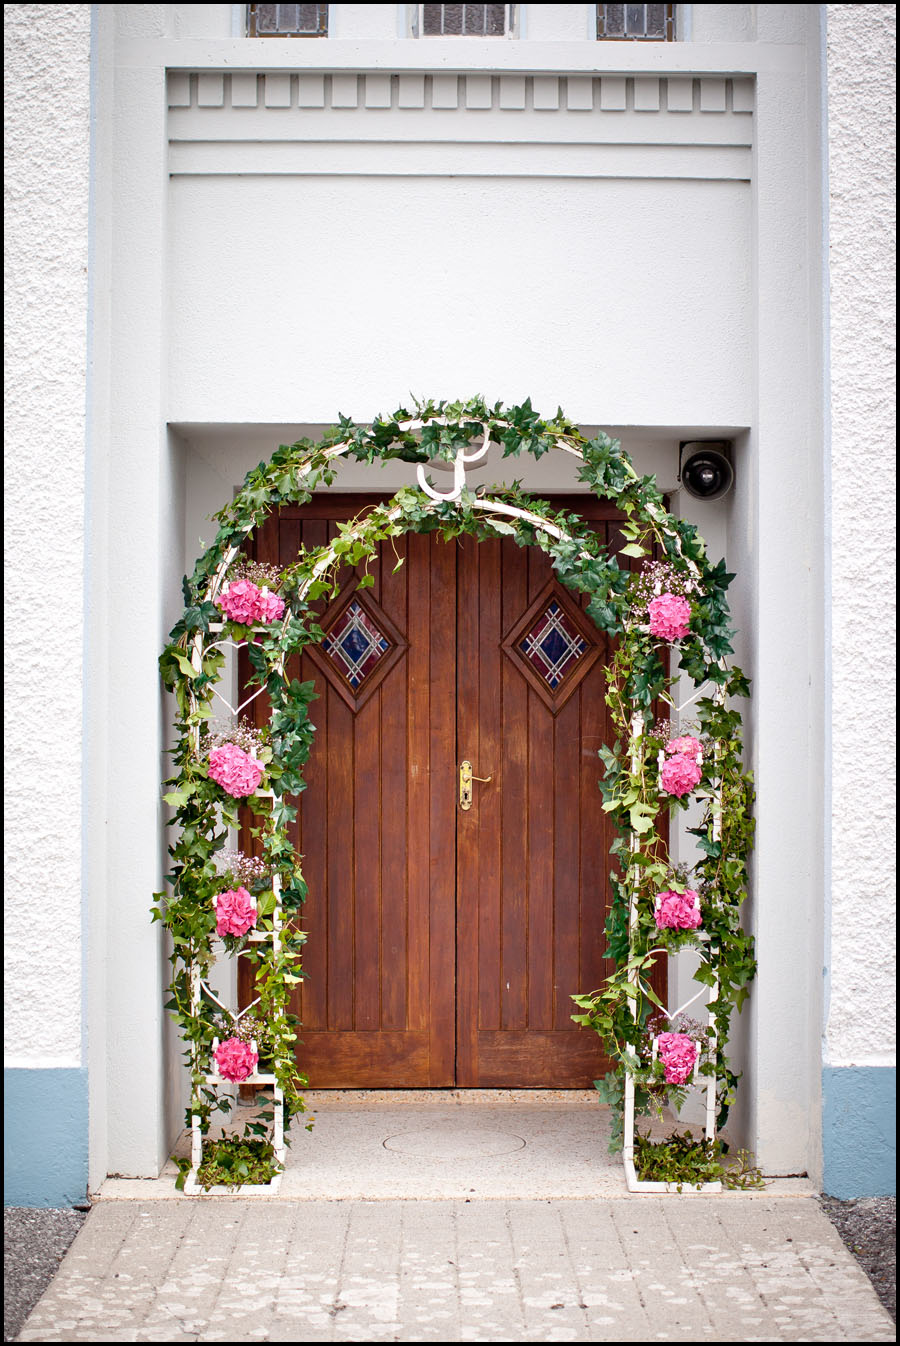 The flowers at the door